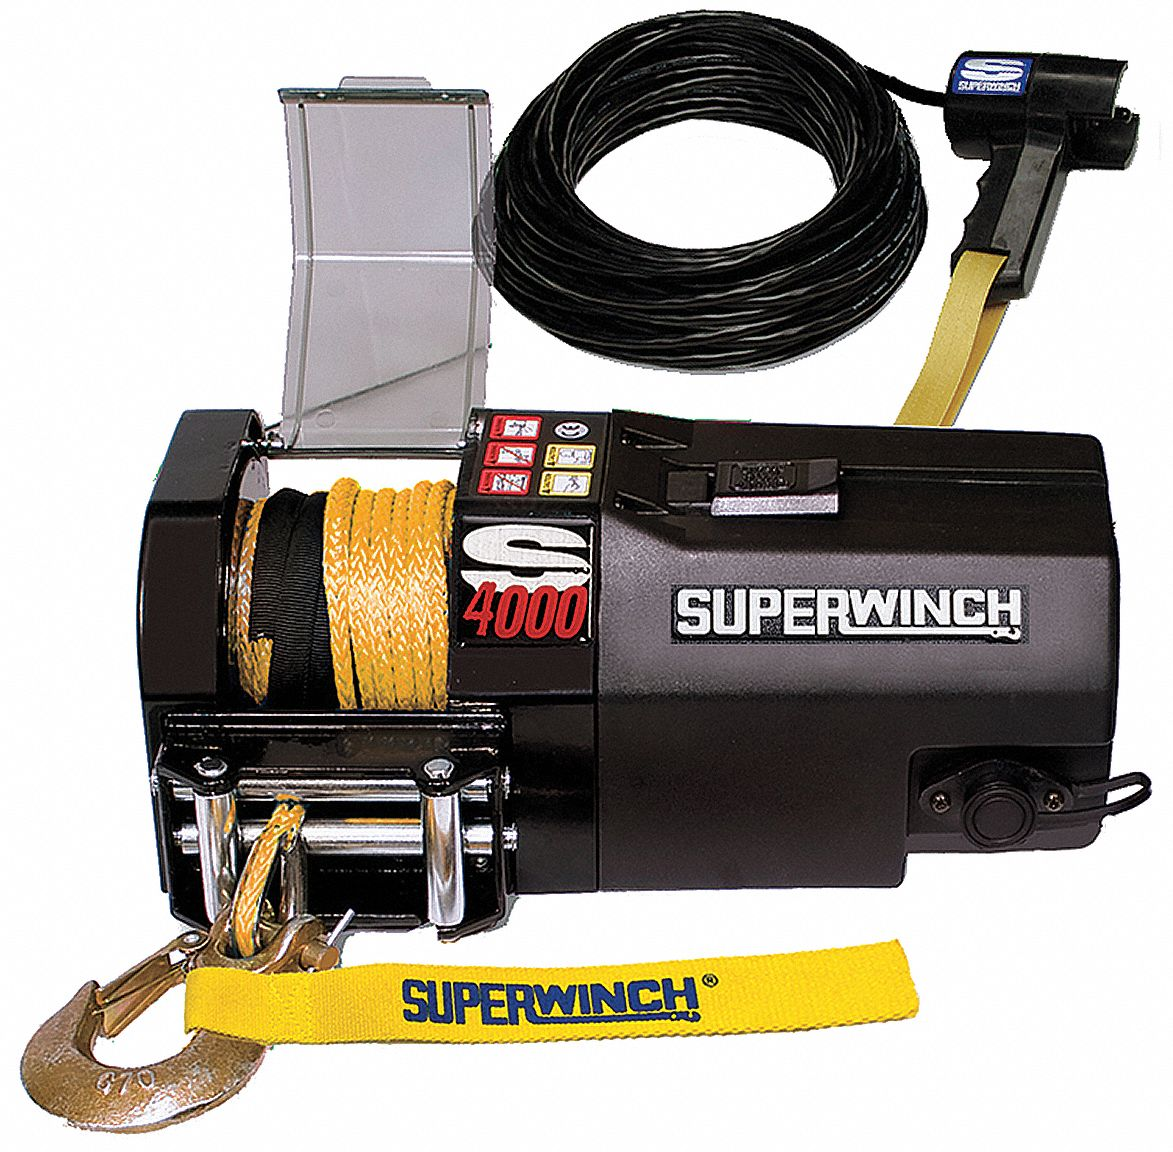 hight resolution of superwinch s4000 winch wiring diagram